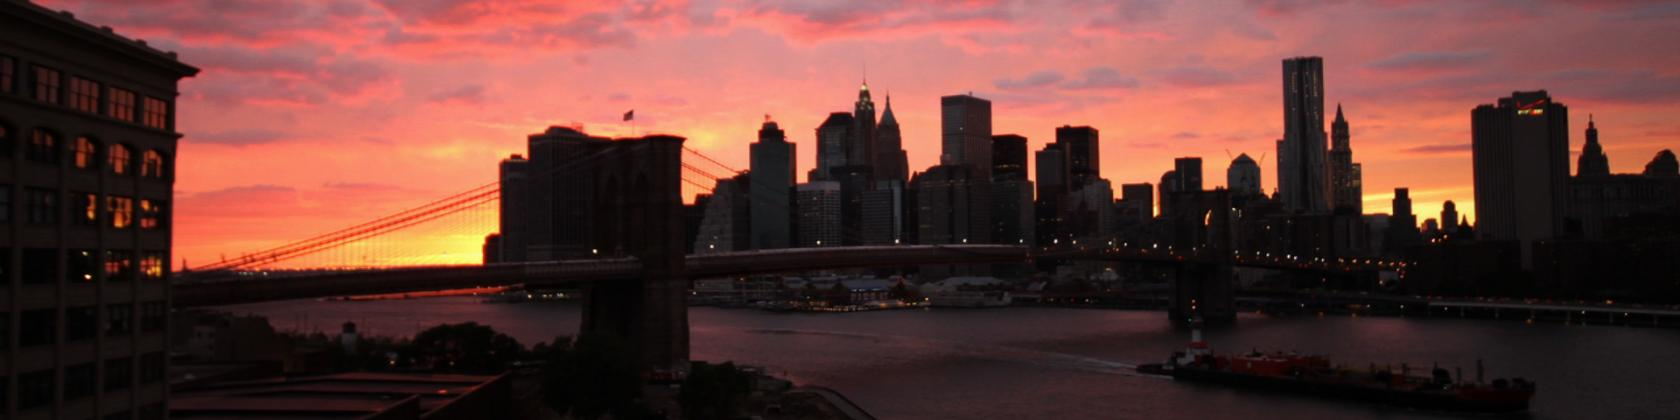 Brooklyn Bridge sunset